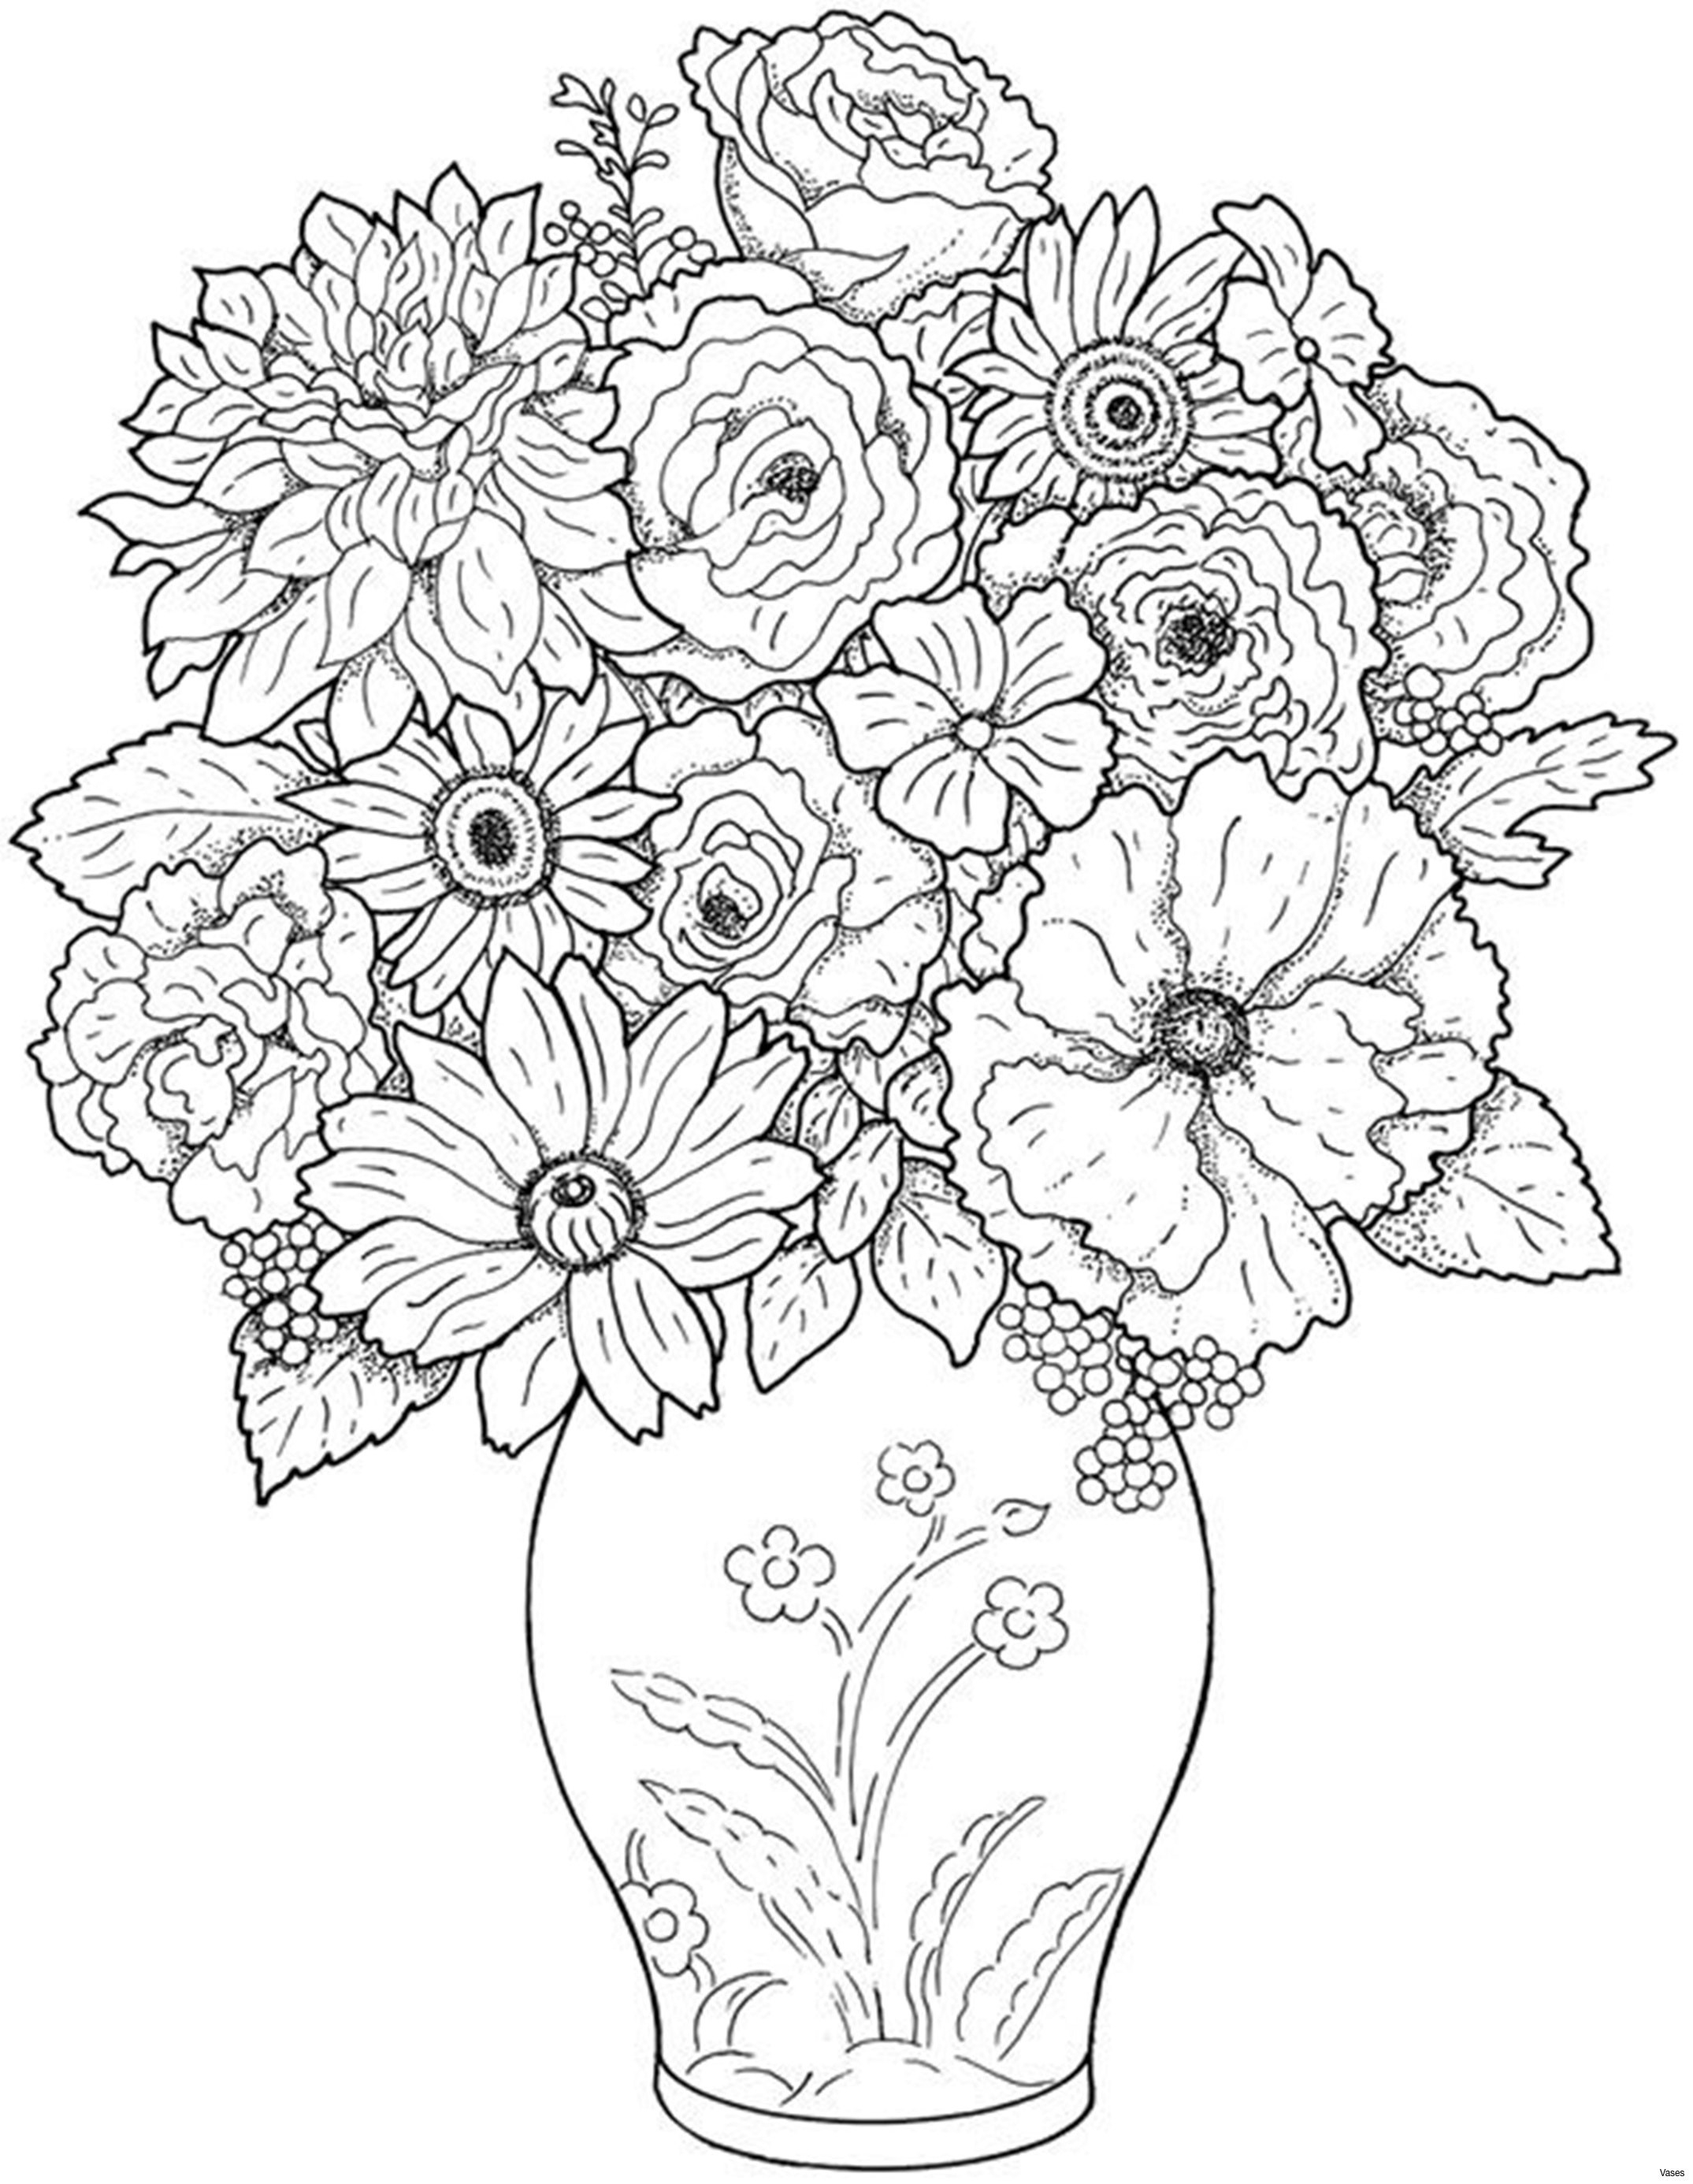 Poppy Coloring Pages  Collection 12j - Save it to your computer